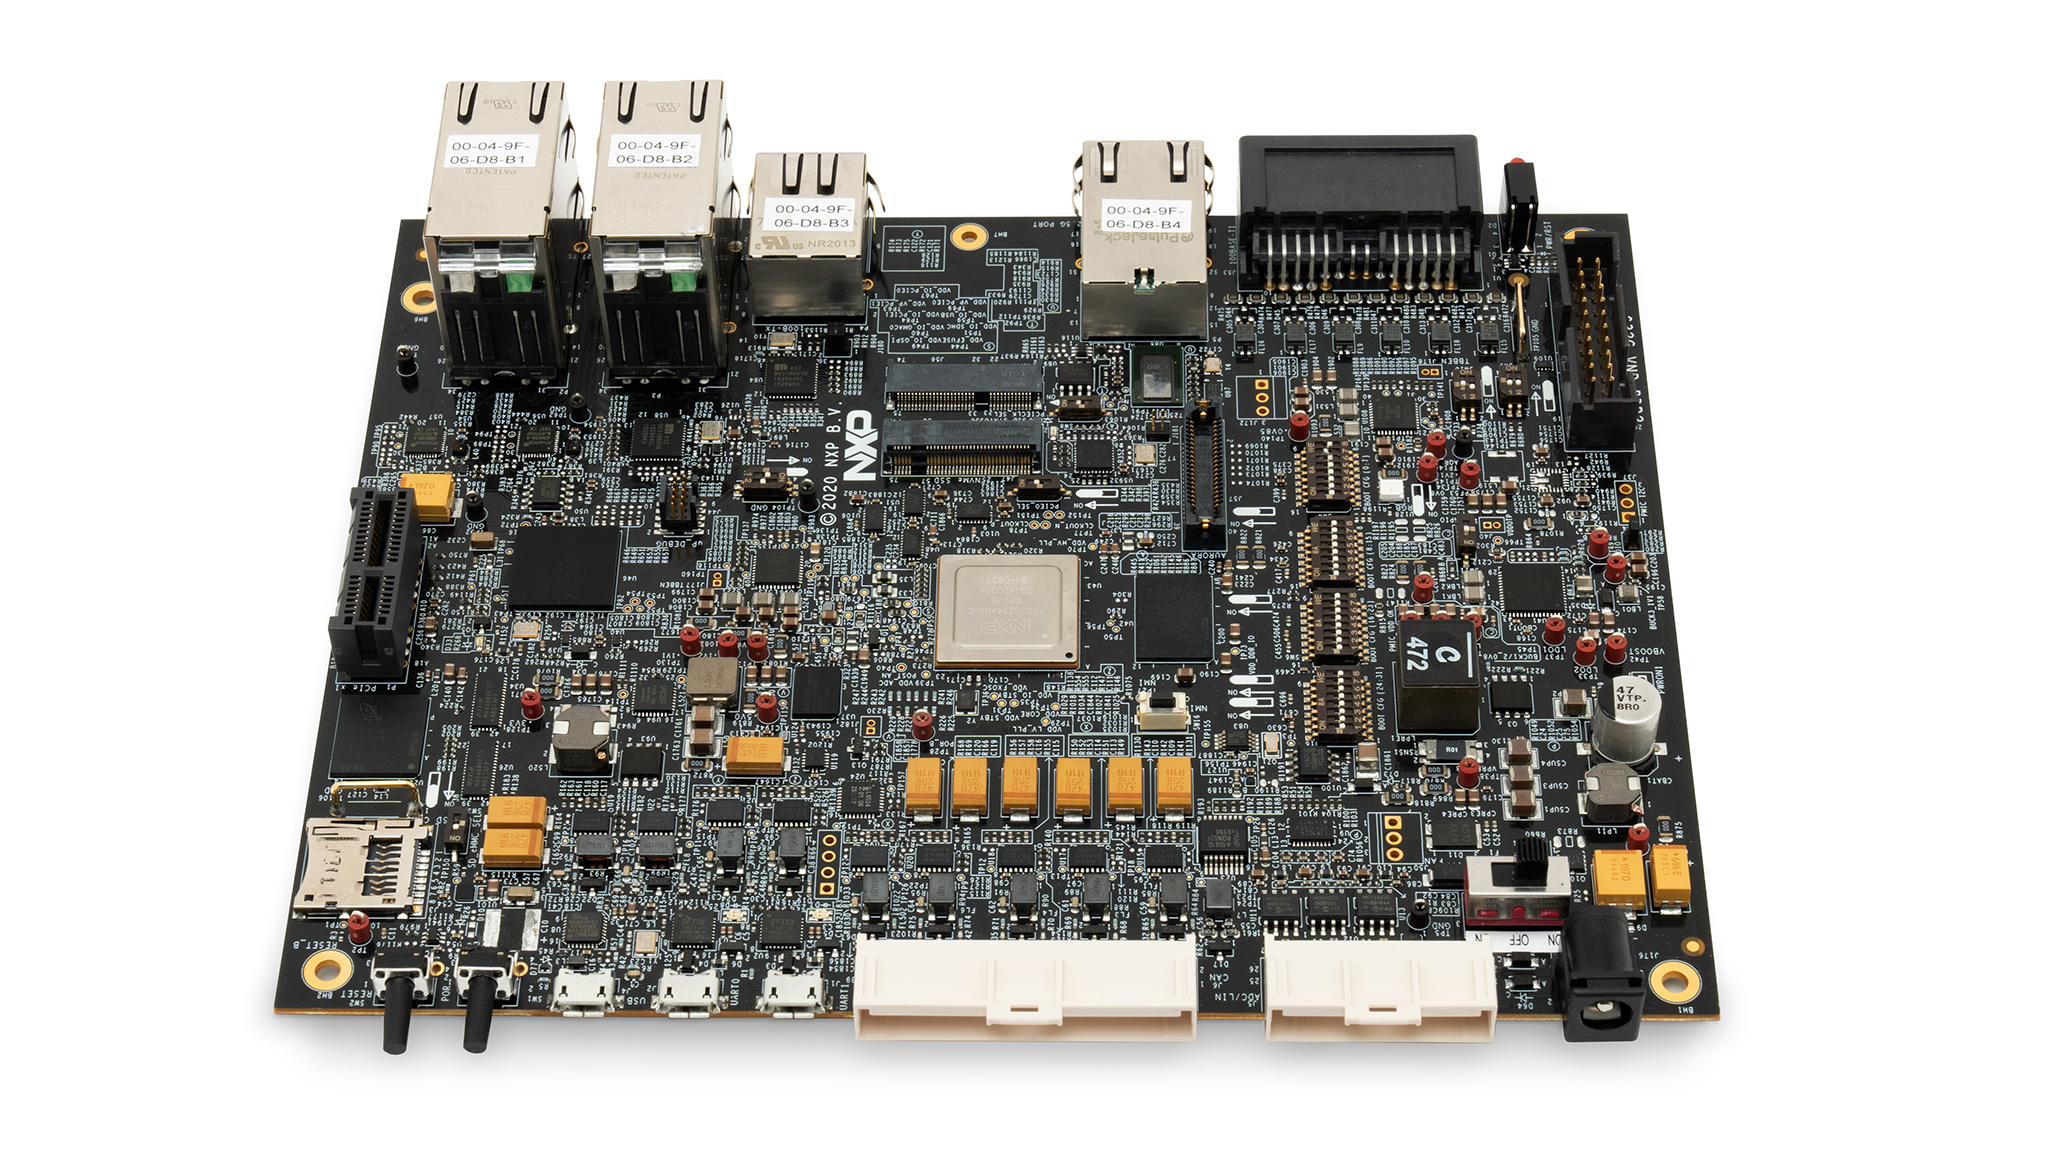 S32G Reference Design 2 for Vehicle Network Processing thumbnail